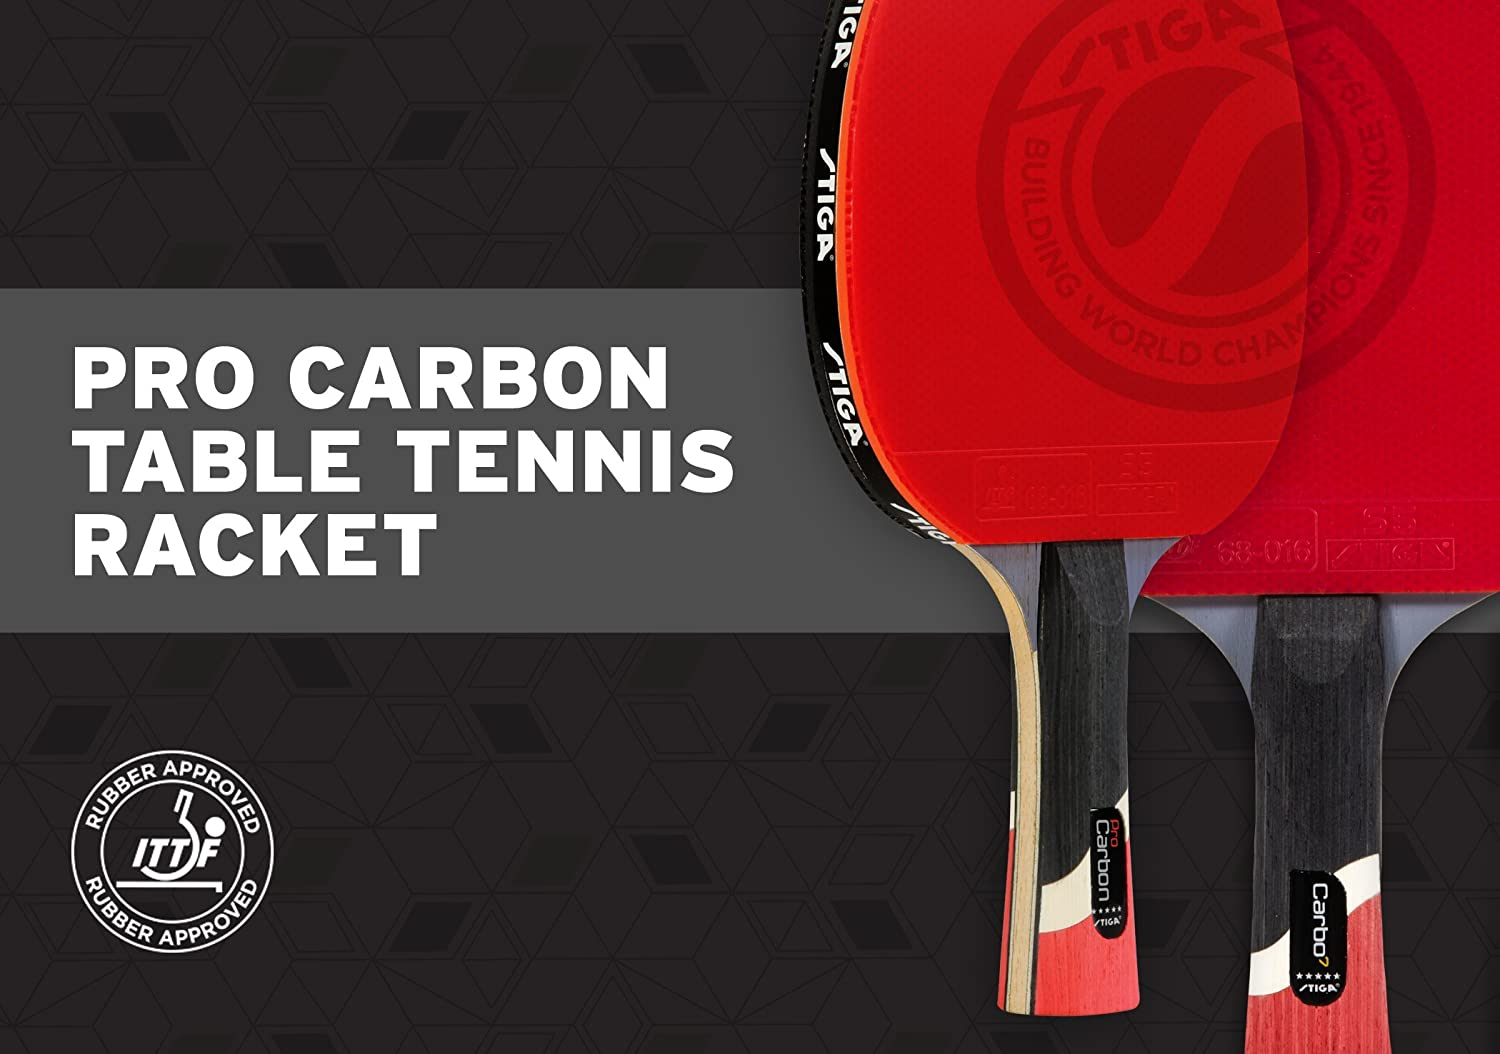 STIGA Pro Carbon Table Tennis Racket 2 Rackets